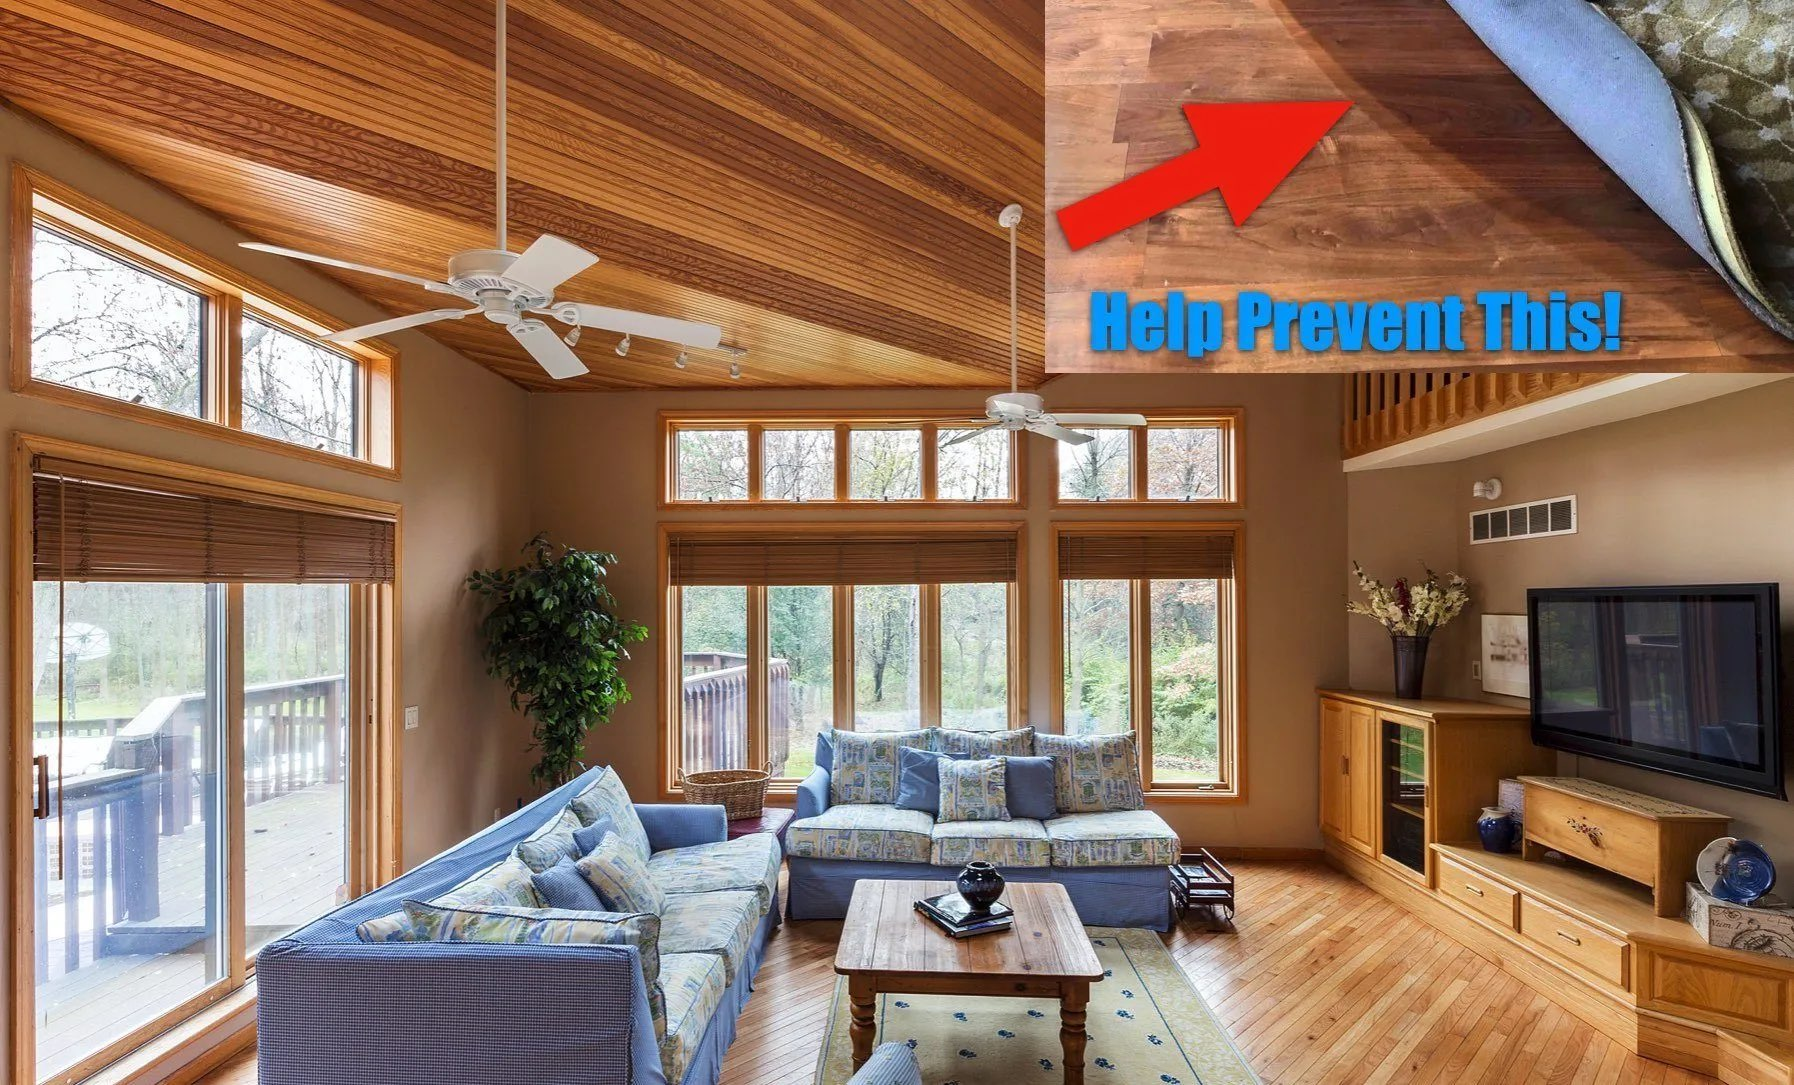 Sun Damaged Floors & Furnishings - How To Protect Against Fading - Home Window Tinting in Western, Michigan